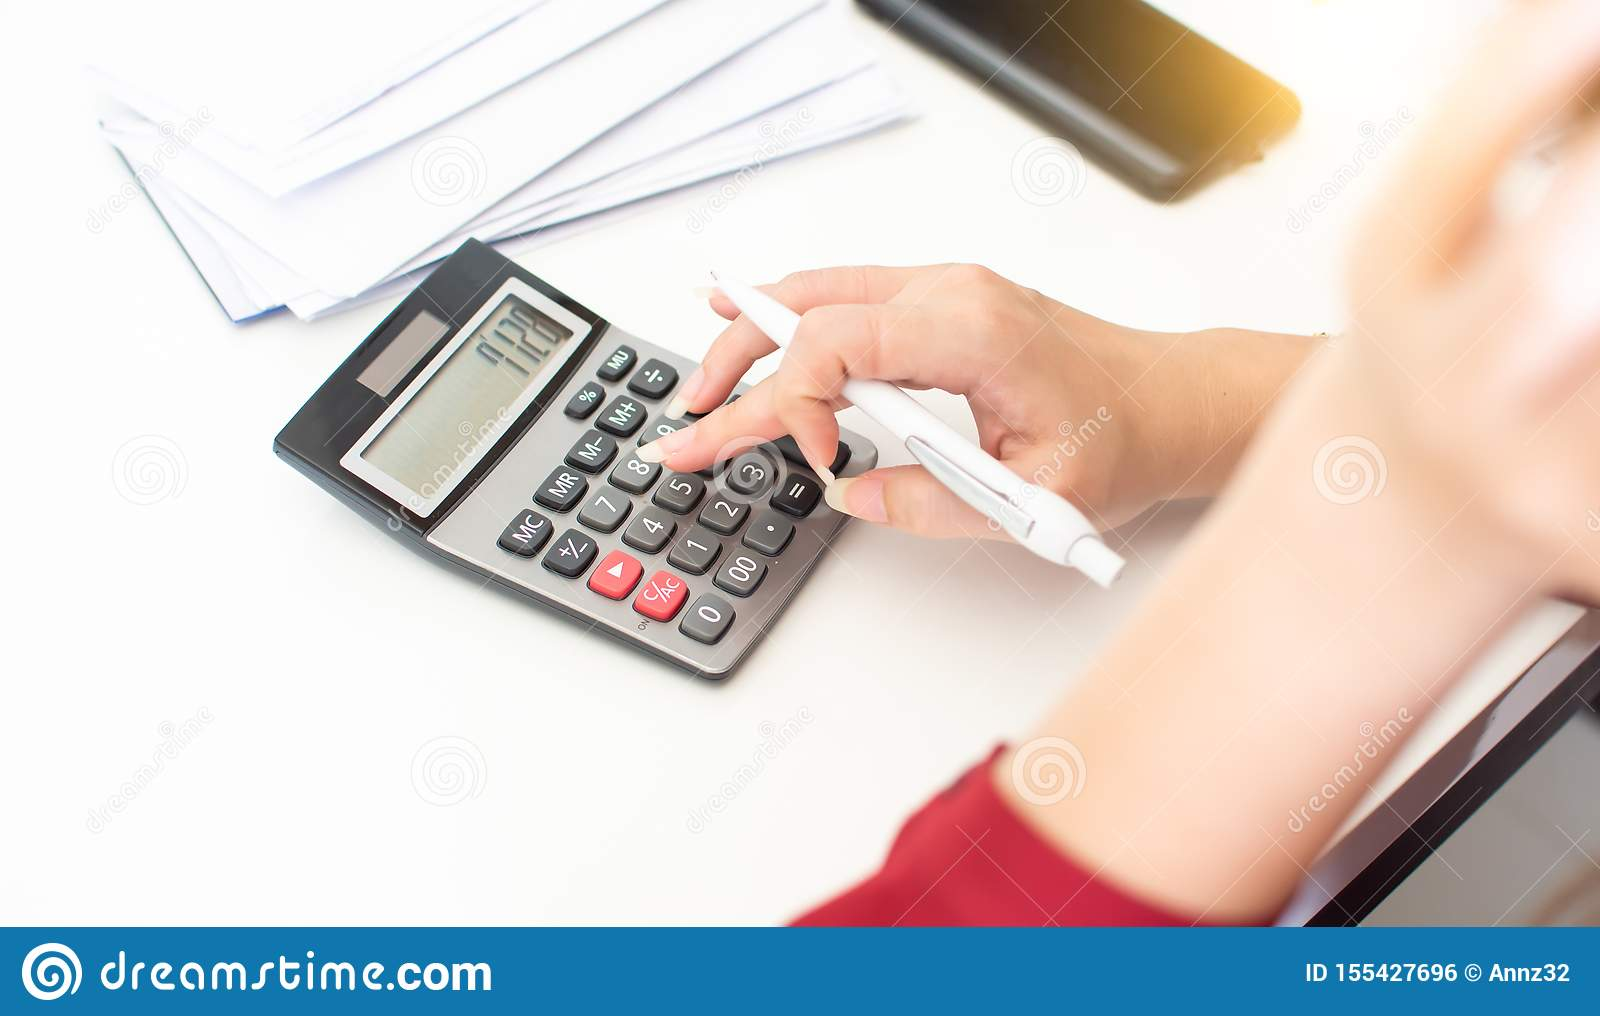 Hand of woman is using calculator